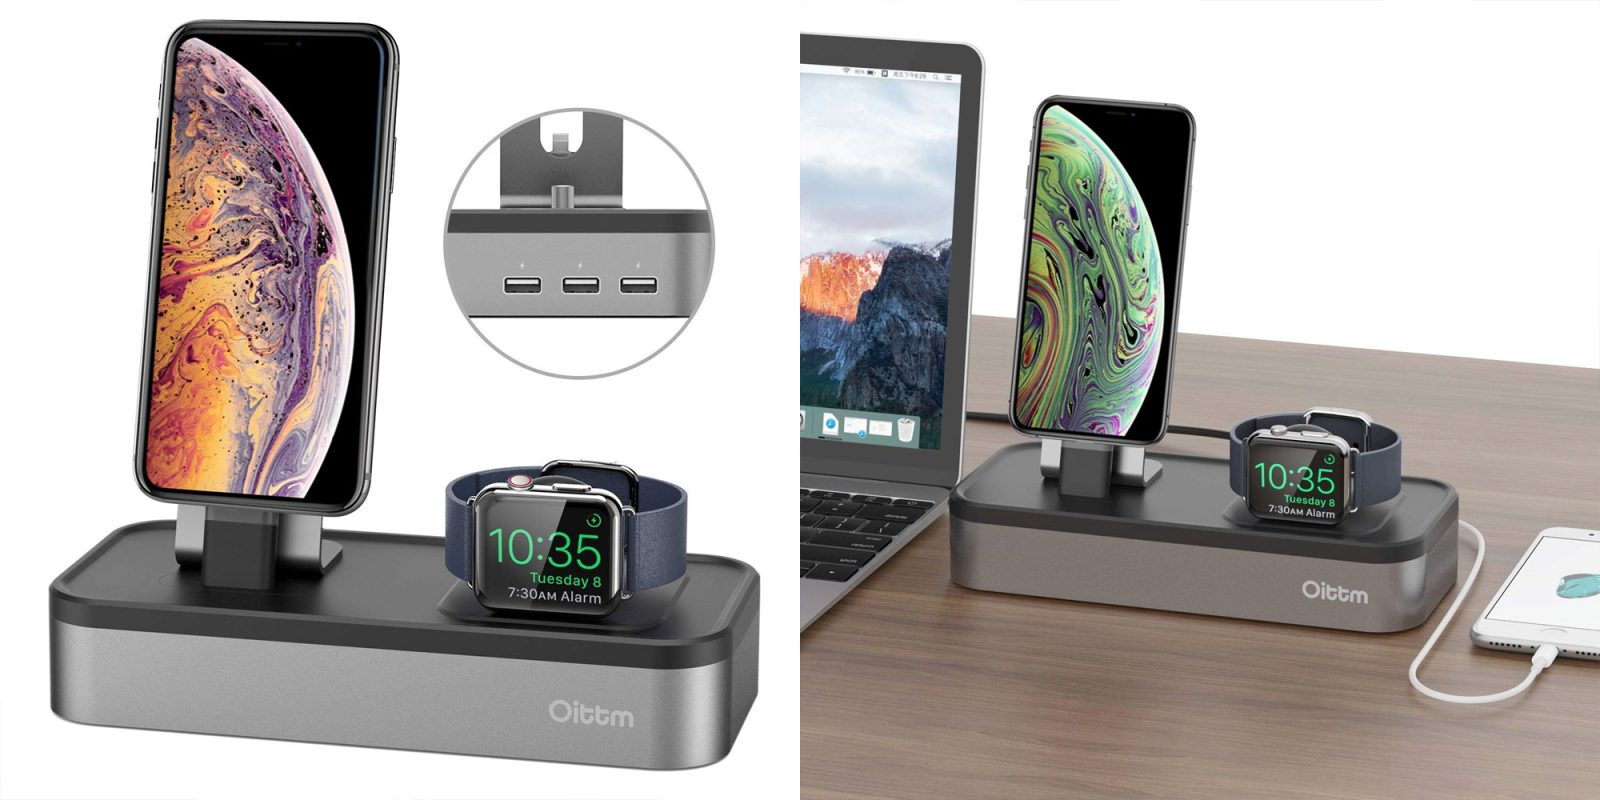 Power your iPhone, Apple Watch, iPad, more with this $21.50 dock at Amazon